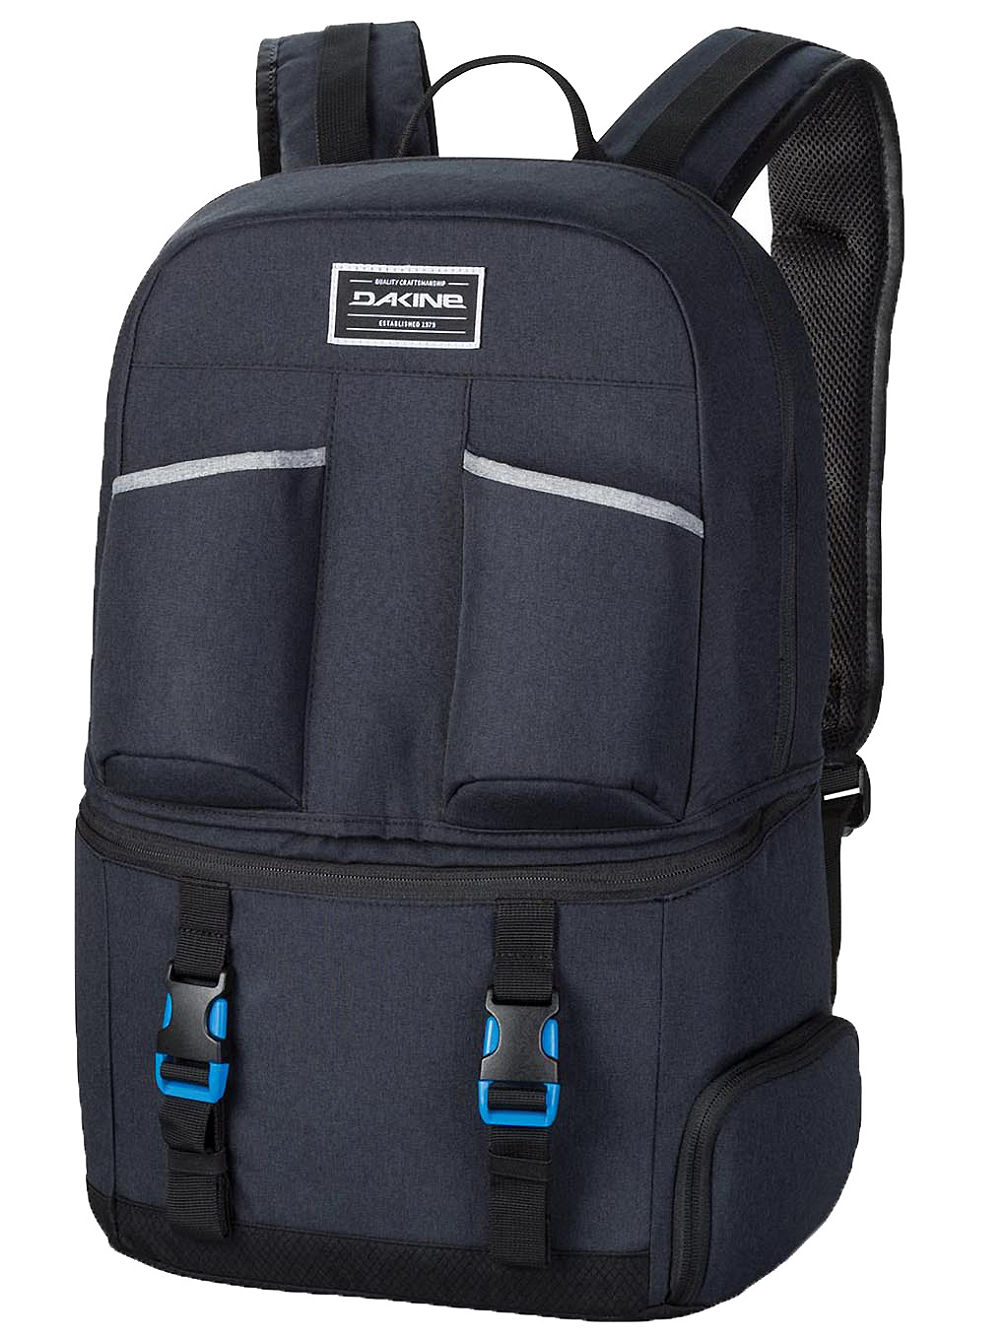 Party Pack 28L Backpack